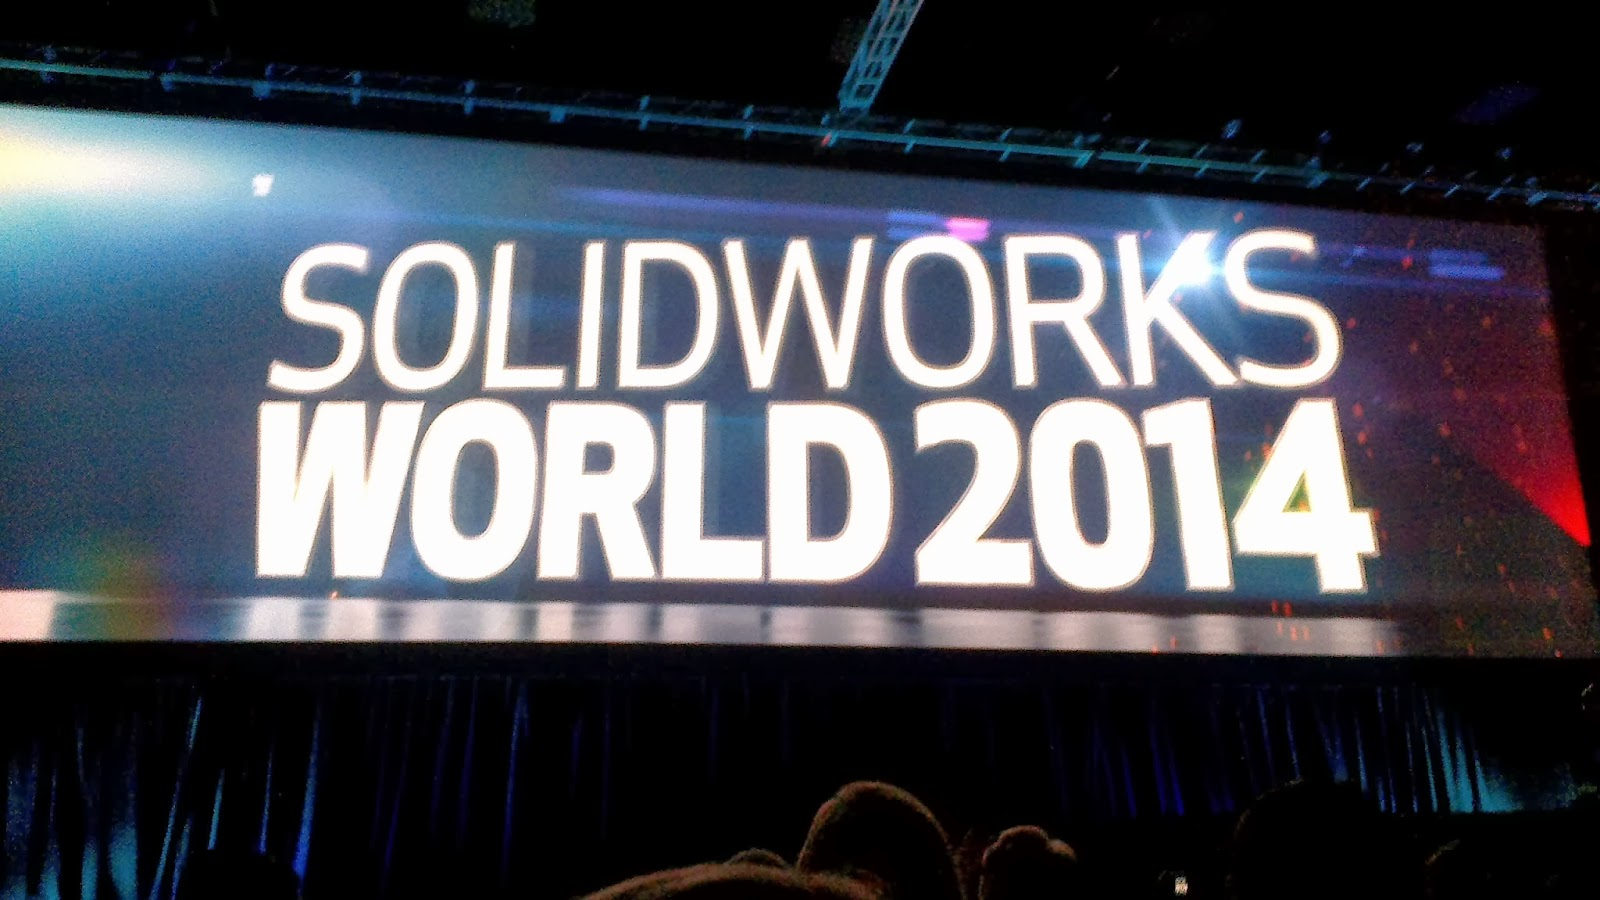 Opening of SolidWorks World 2014